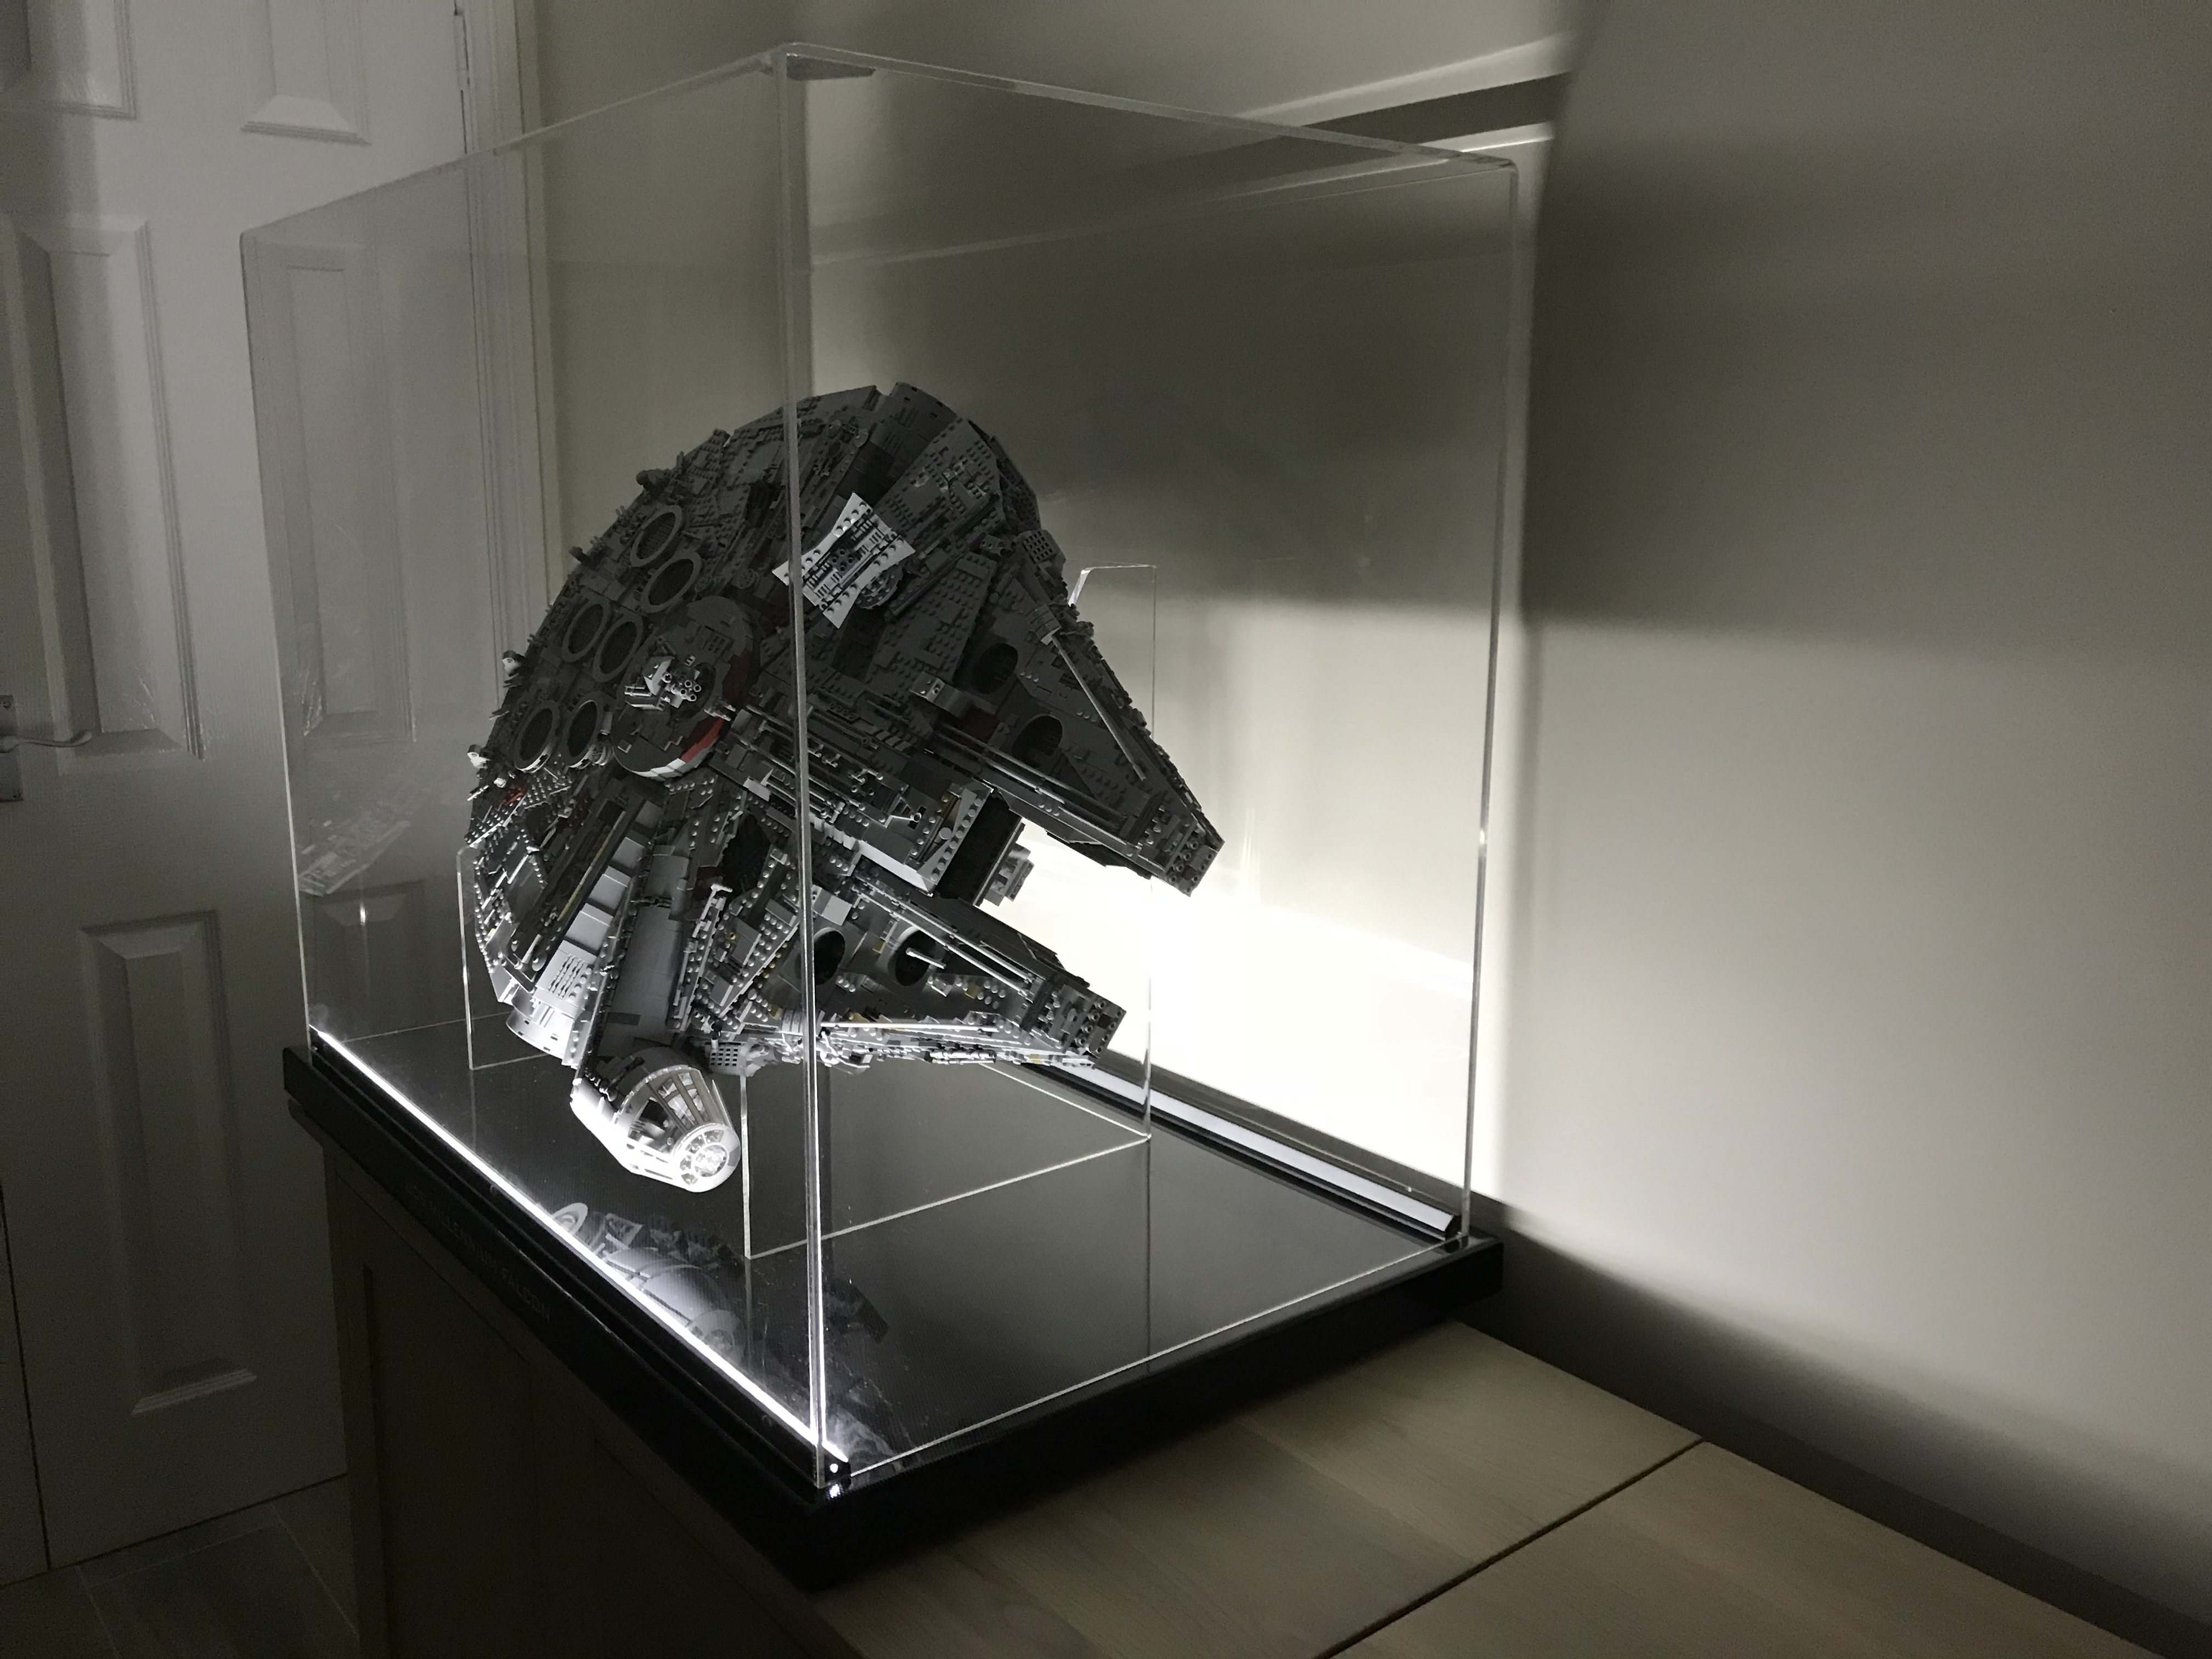 75192 Ucs Millennium Falcon Display Ideas Stands